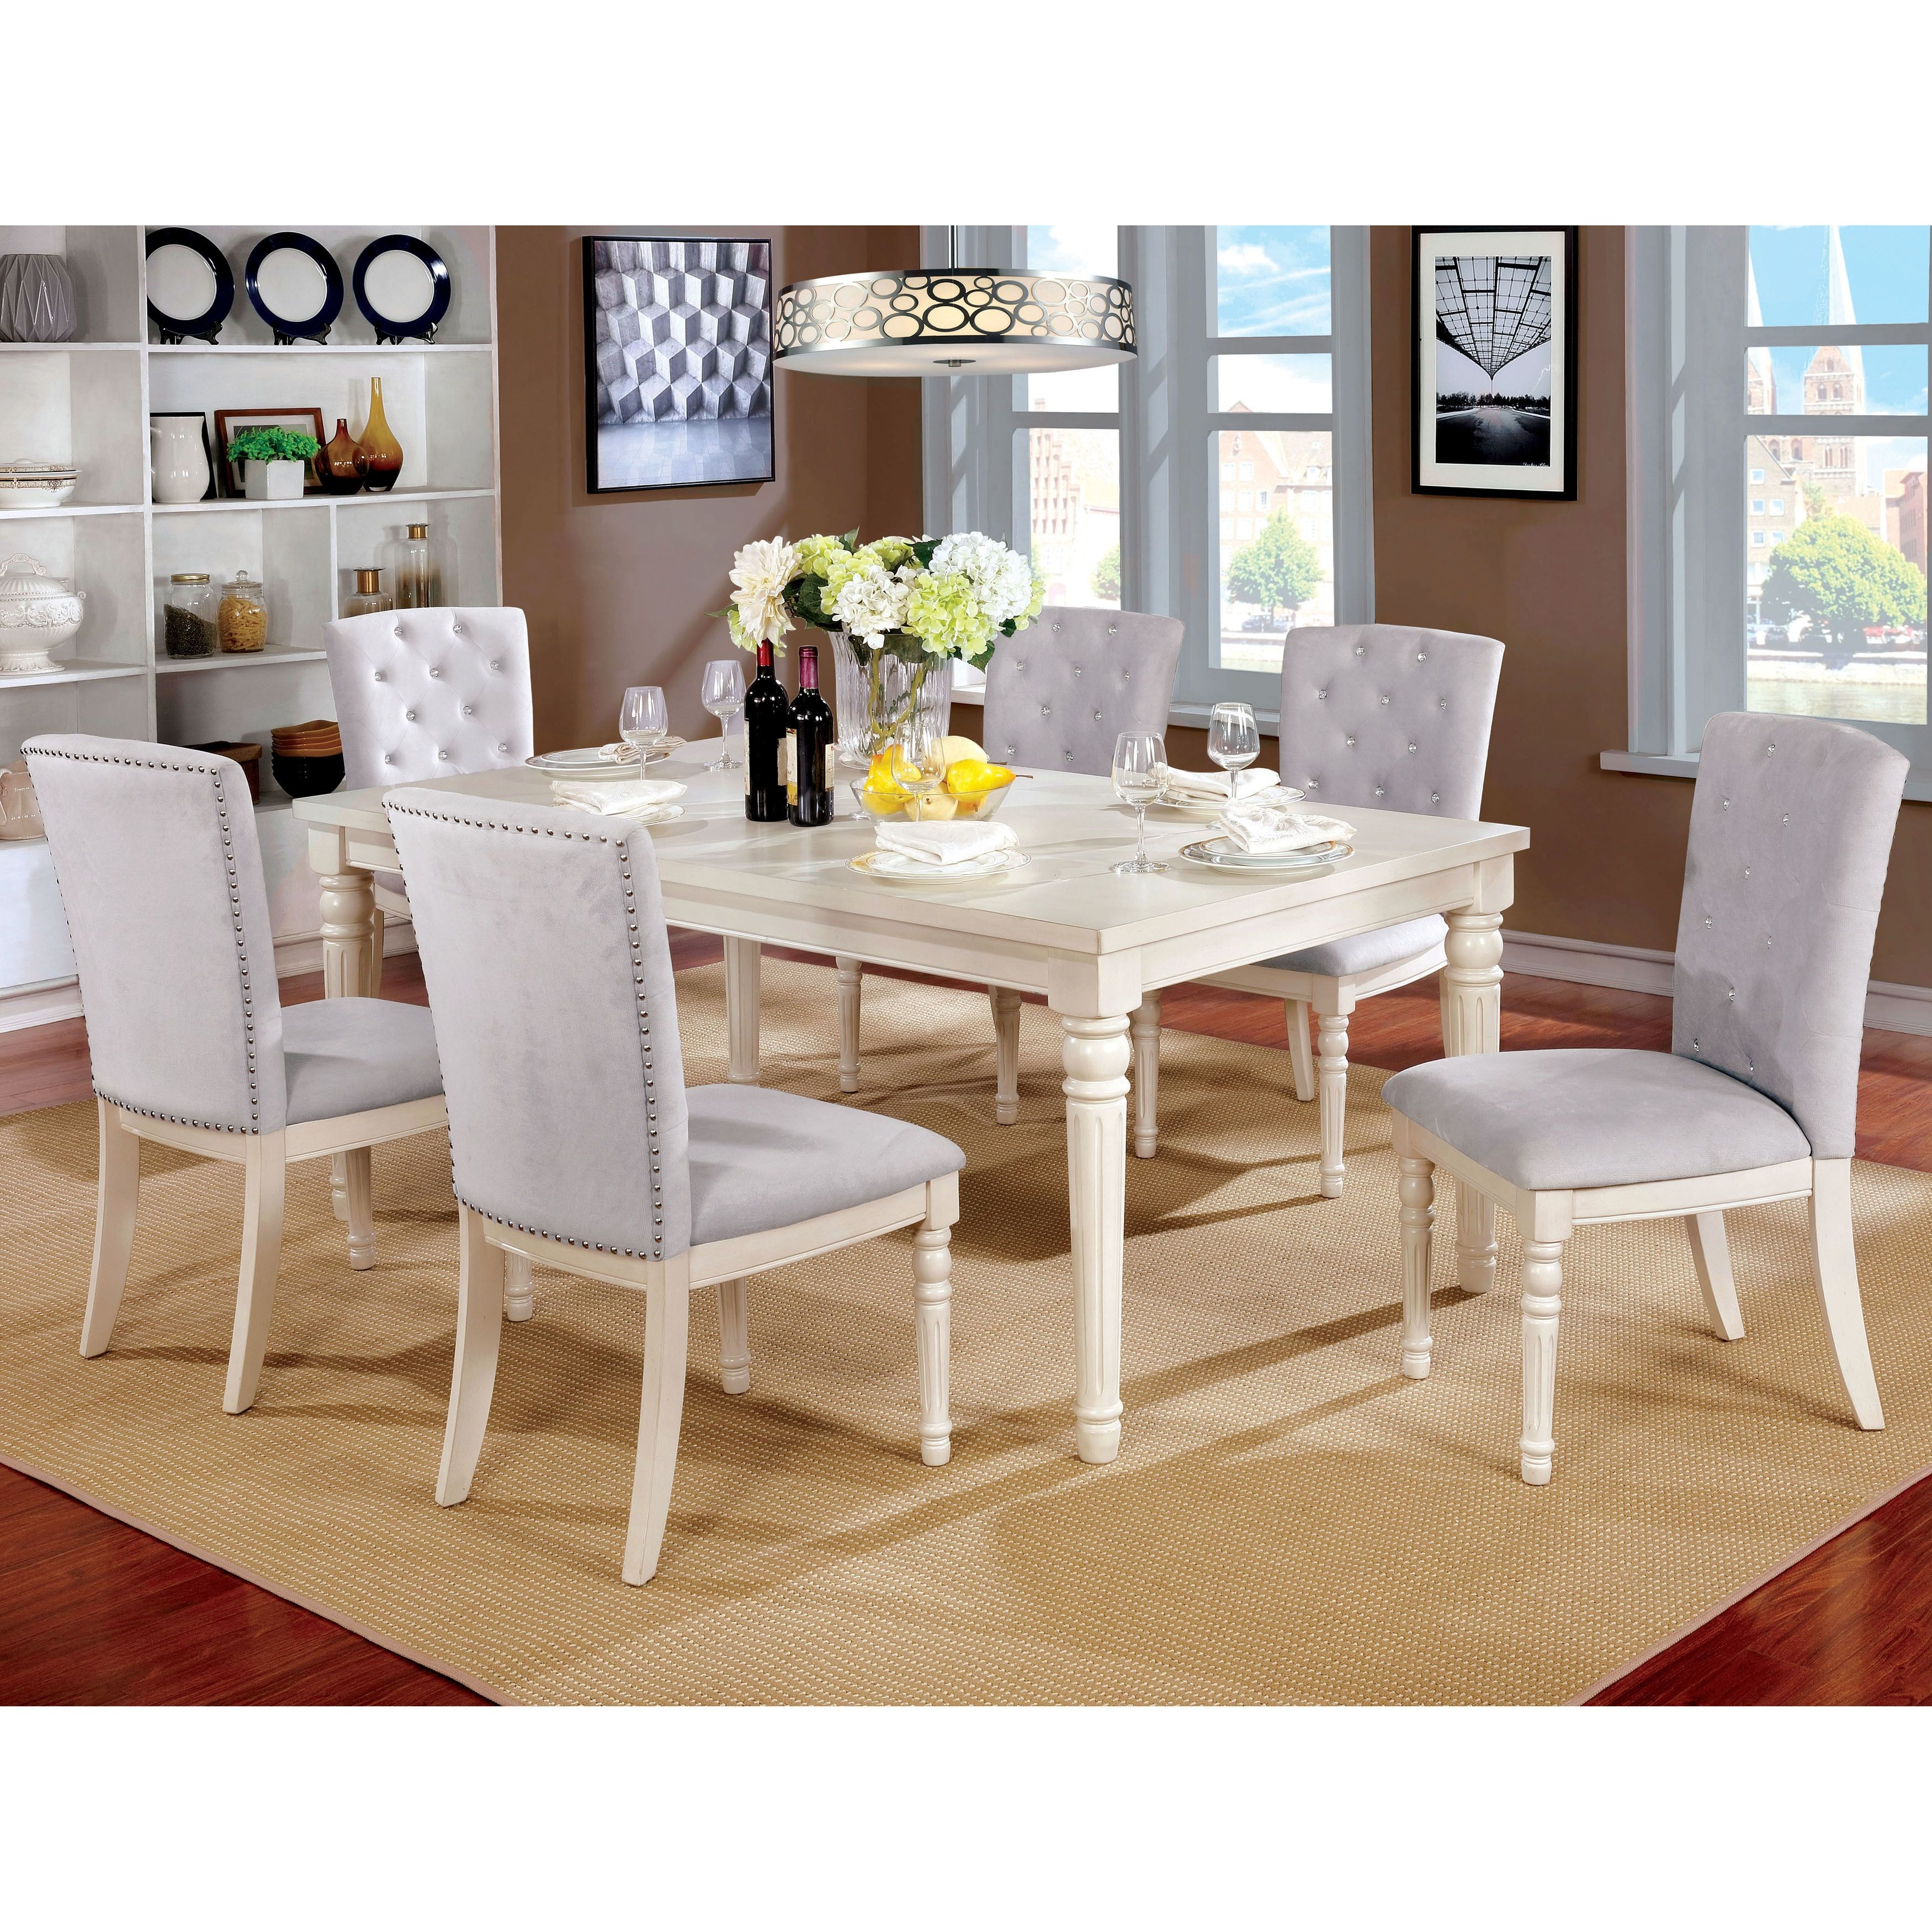 appealing set round furniture off unique uk dining white and room kitchen colored size of f table distressed chairs black beautiful